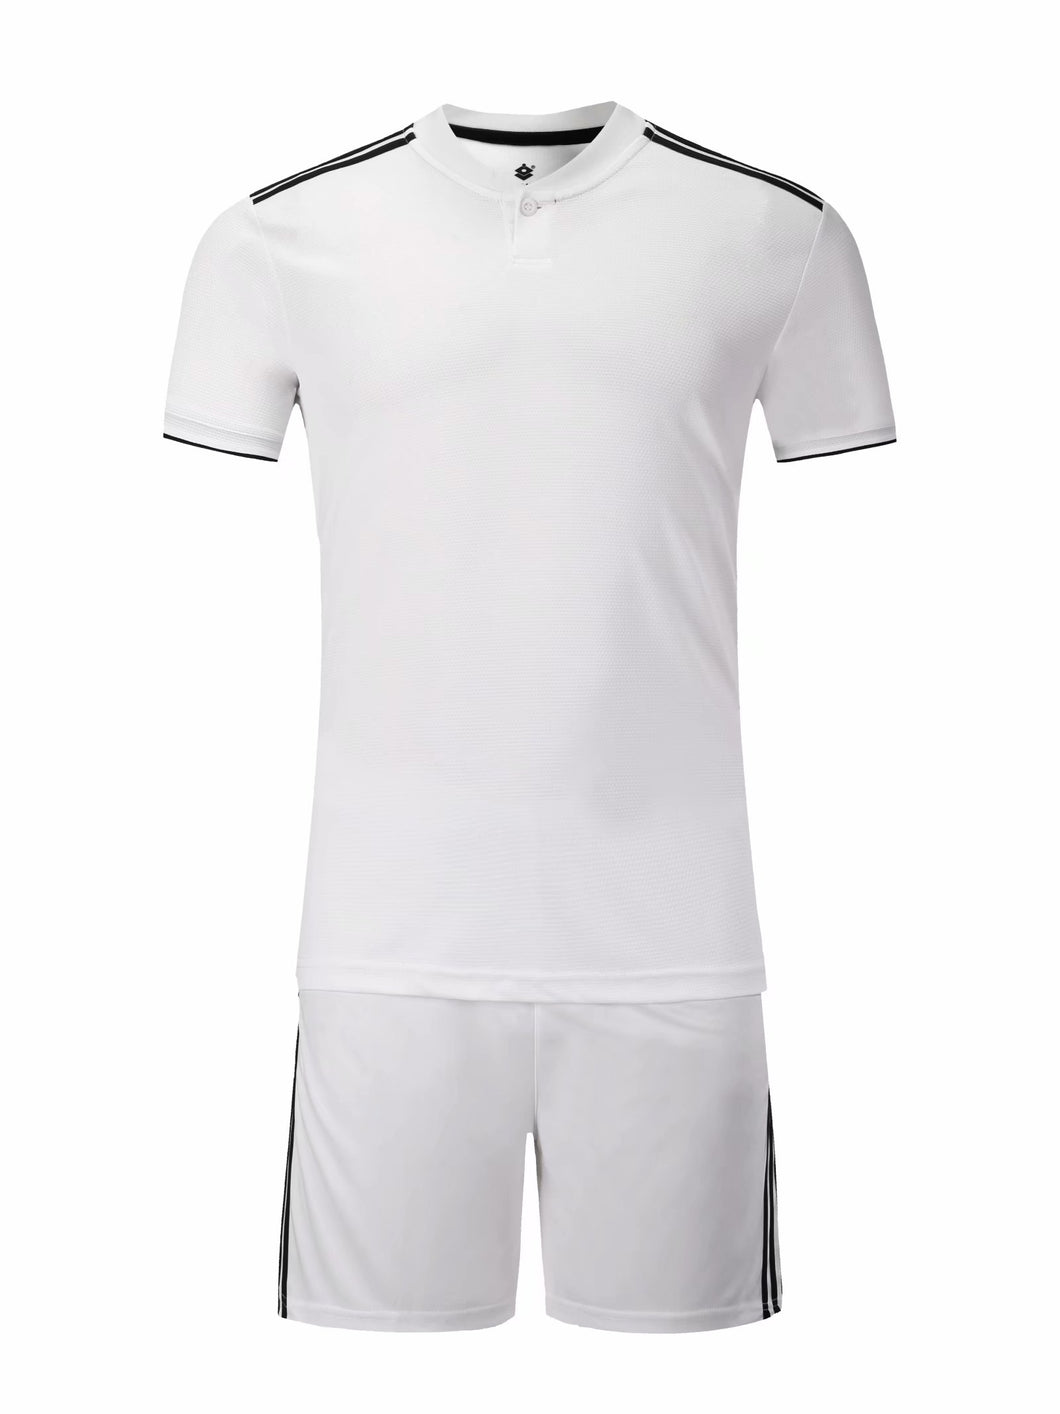 Full Football Kit - White top and shorts with Black detail